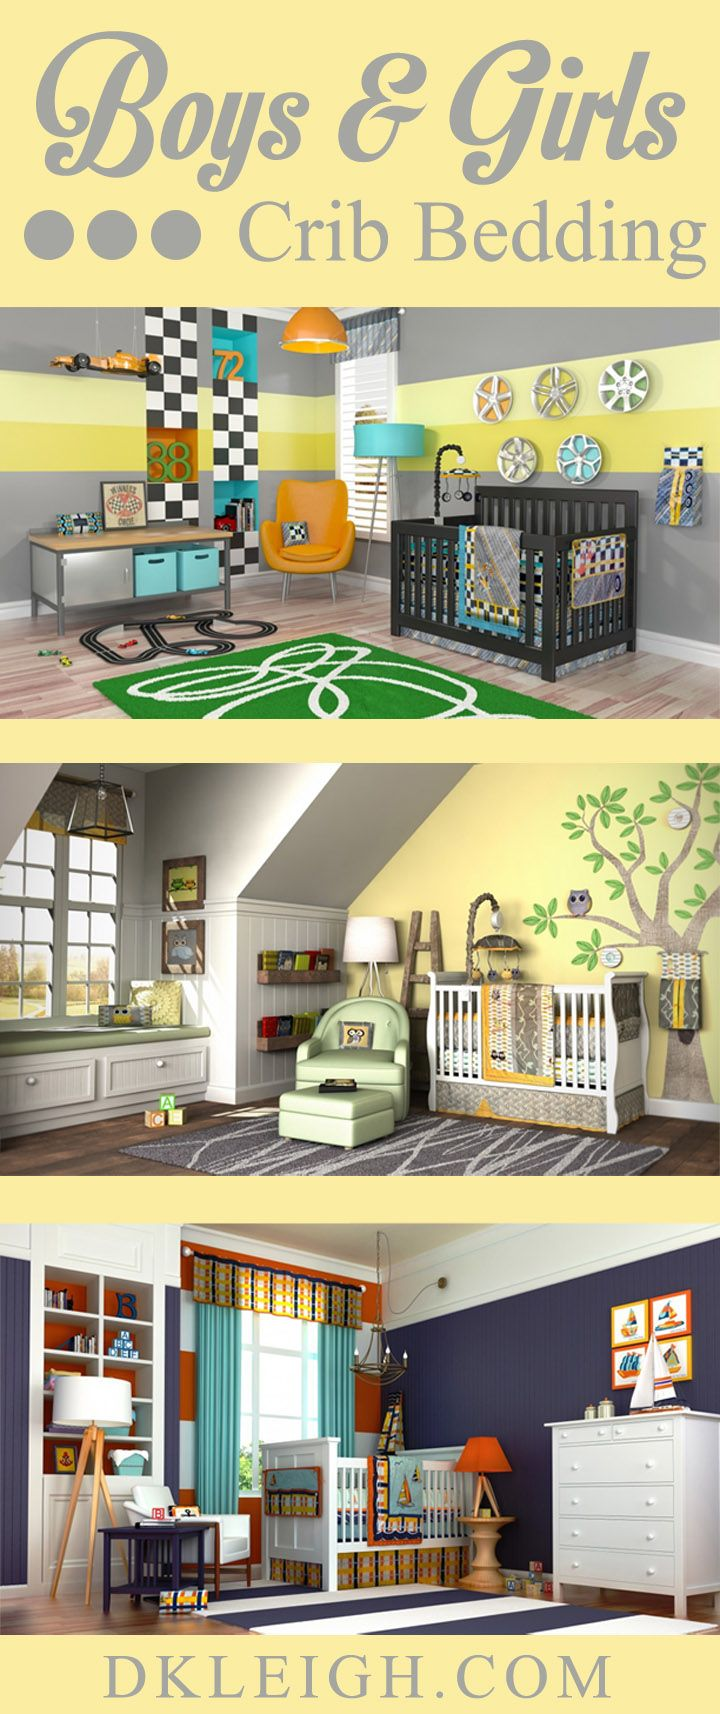 Leigh gender neutral 10pc owl baby crib bedding set grey yellow green - Boys And Girls Crib Bedding